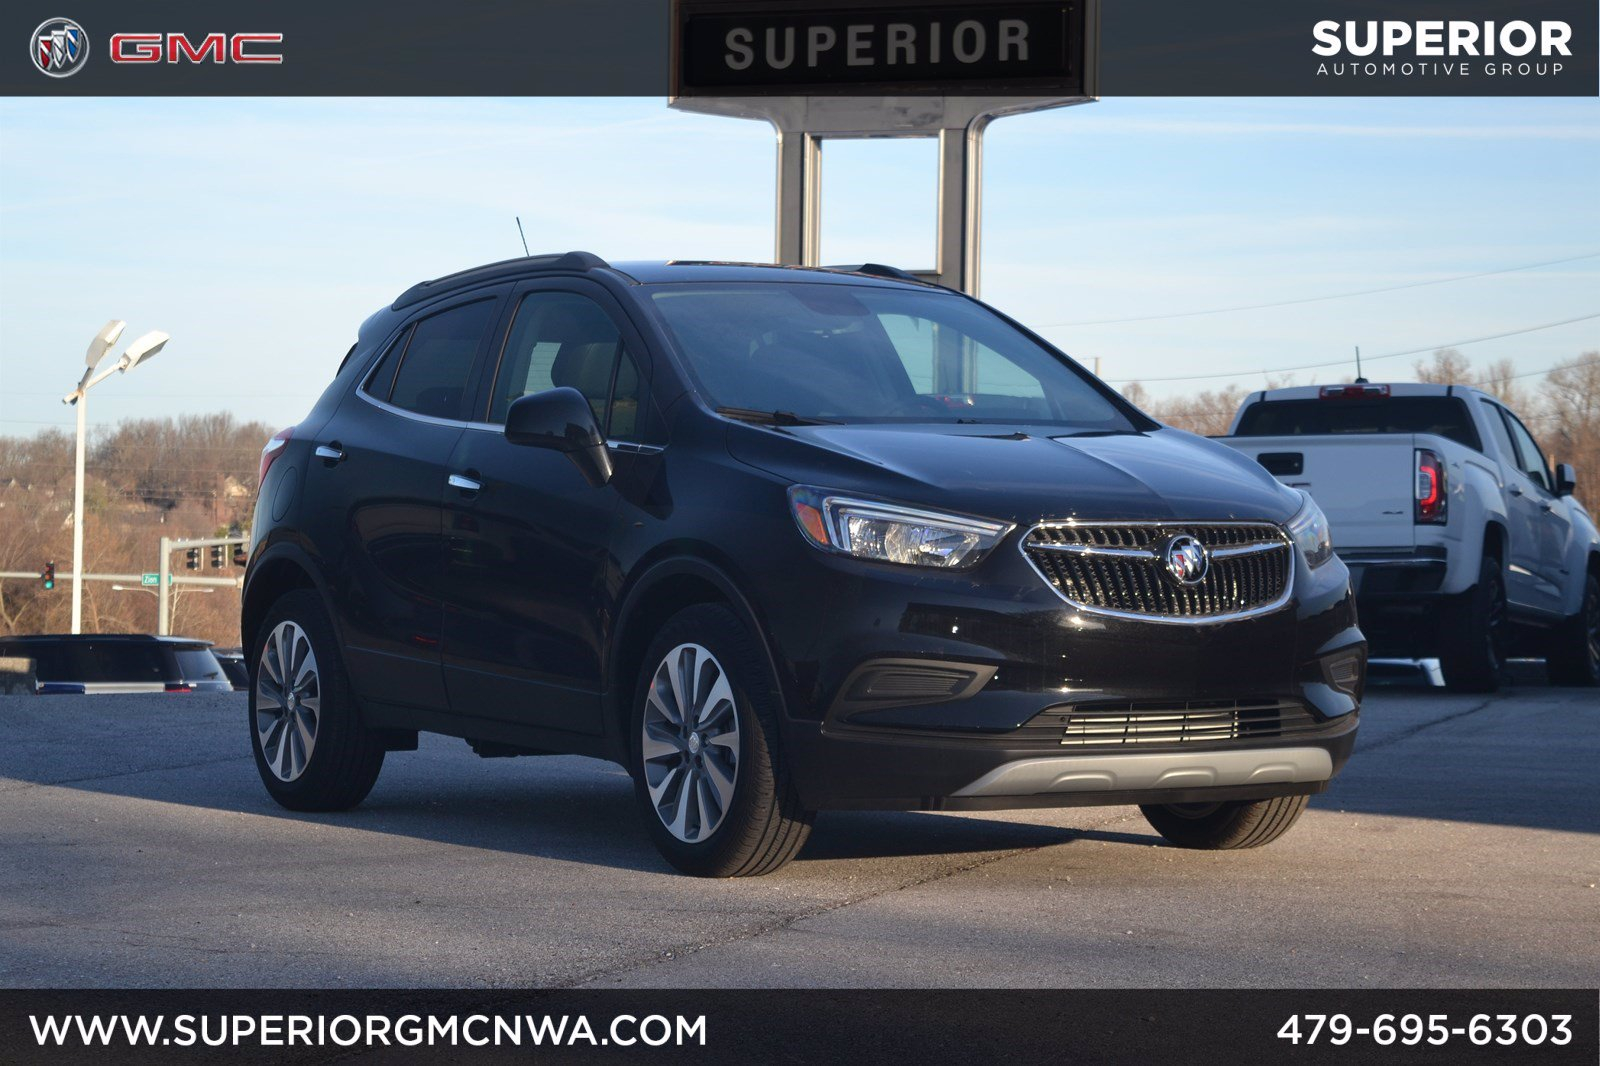 New 2020 Buick Encore Preferred Fwd Sport Utility New 2021 Buick Encore Options, Oil Type, Pictures